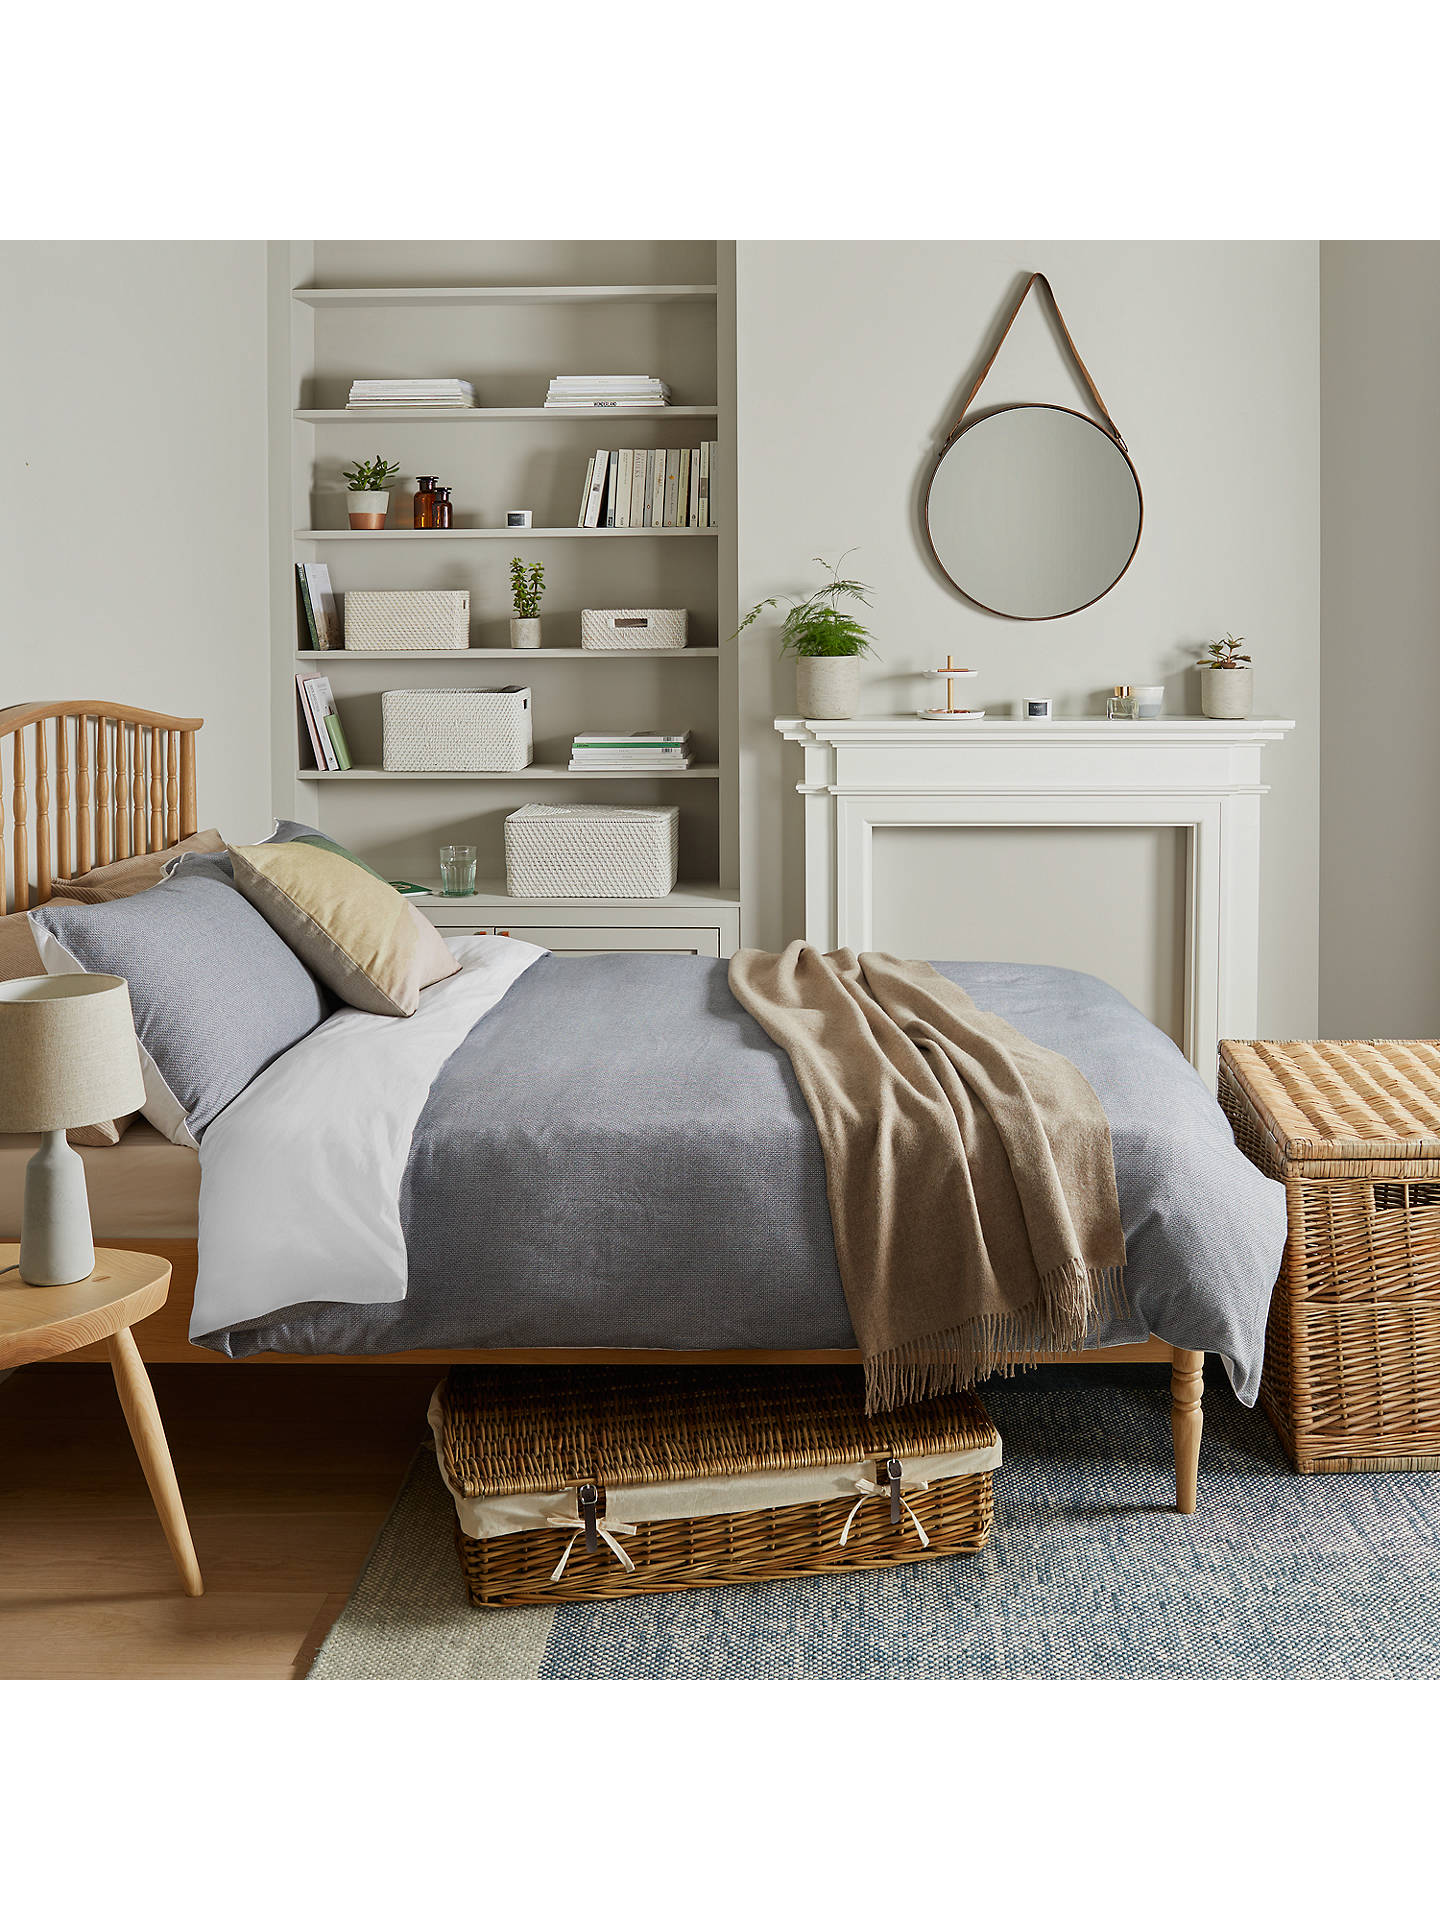 Buy Croft Collection Rattan Basket, White Online at johnlewis.com